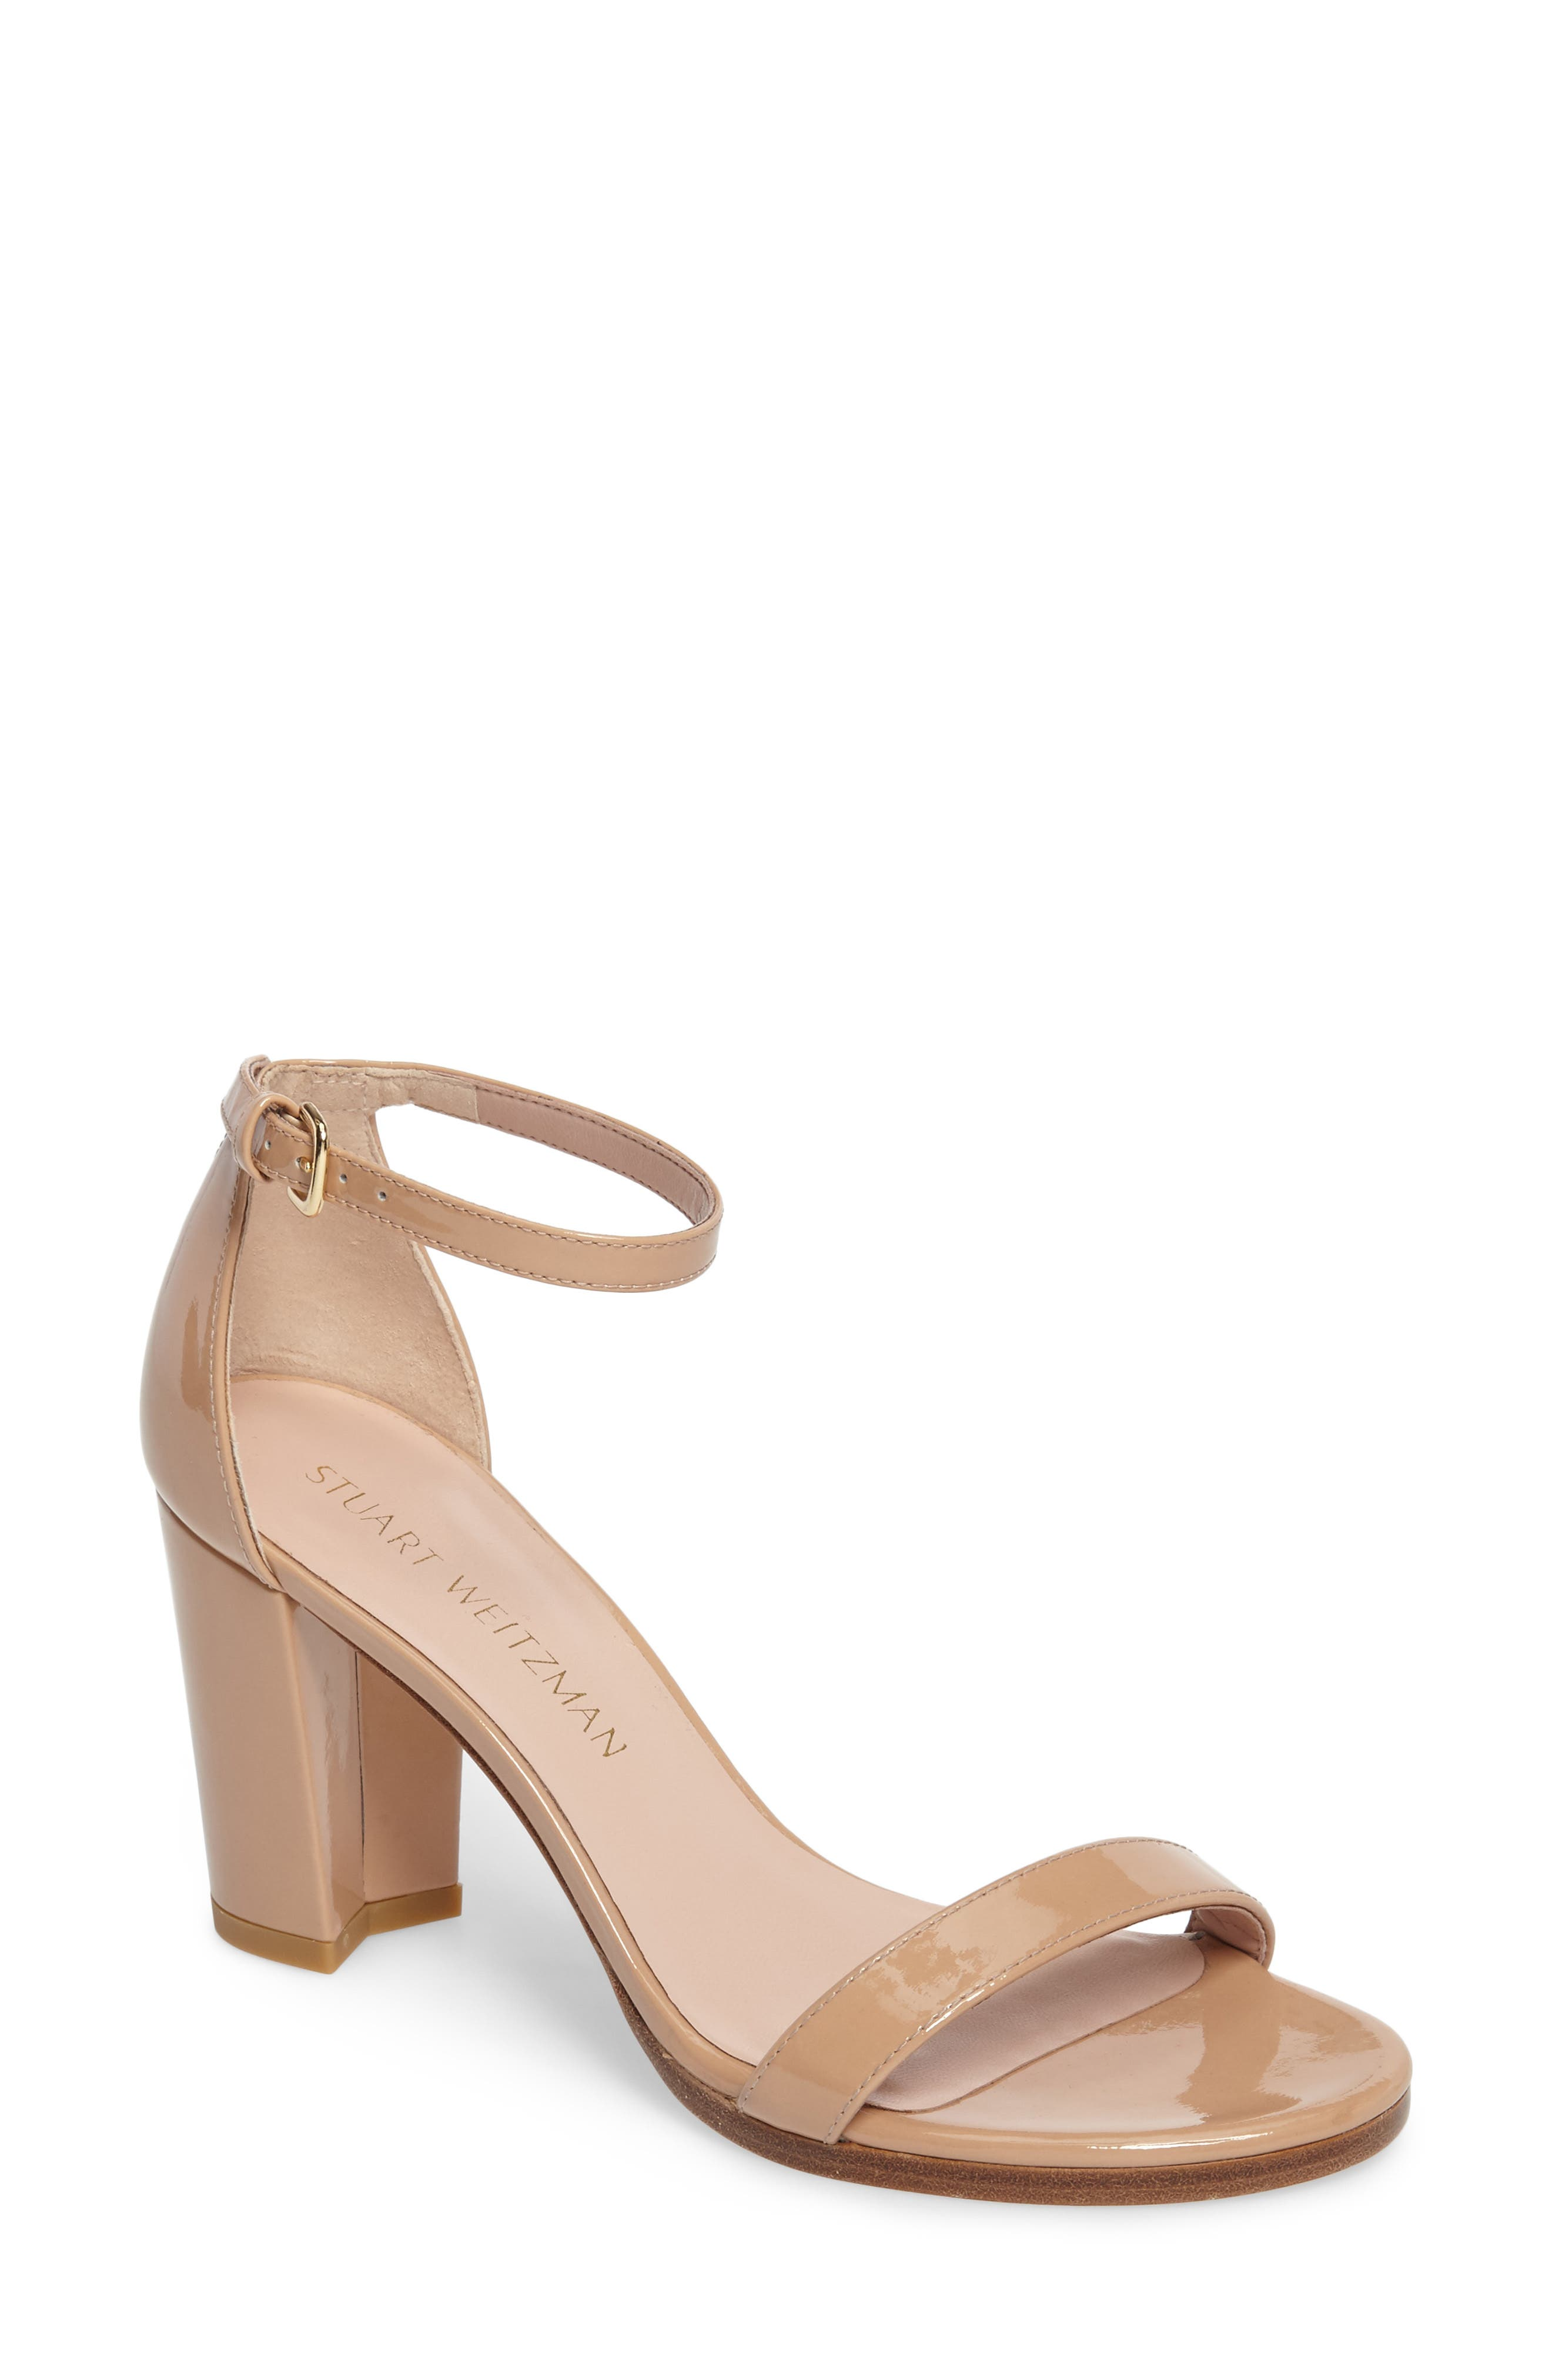 NearlyNude Ankle Strap Sandal,                         Main,                         color, ADOBE ANILINE